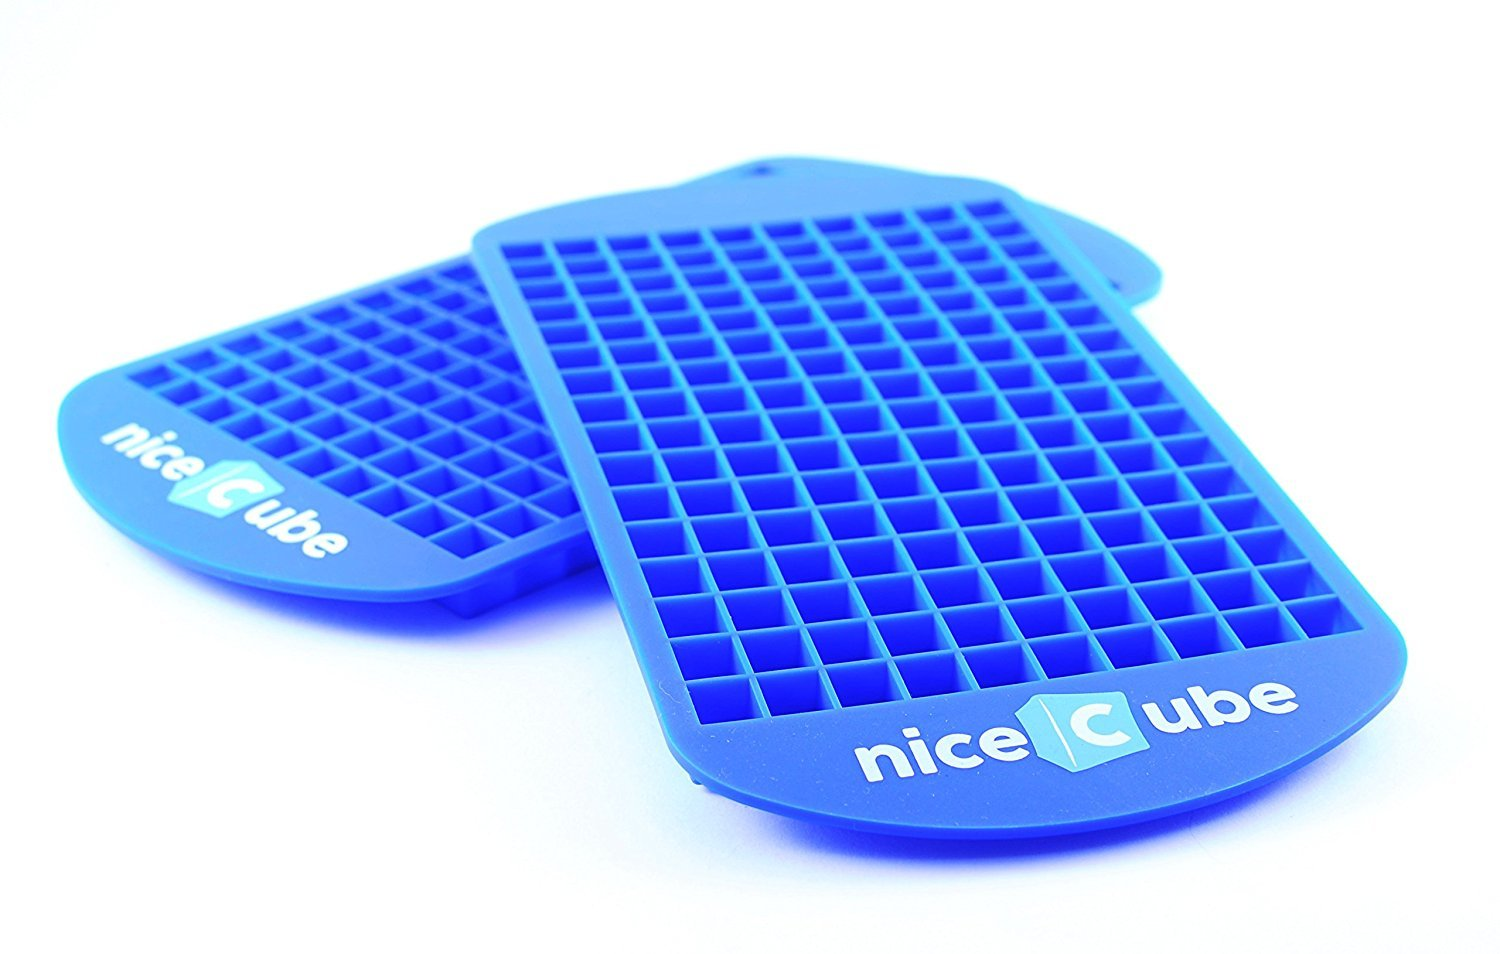 niceCube Mini Ice Cube Trays - 2 Ice Tray Set - 160 Small Cube Silicone Molds, BPA-Free, Mini Cubes Will Chill Your Drink Faster